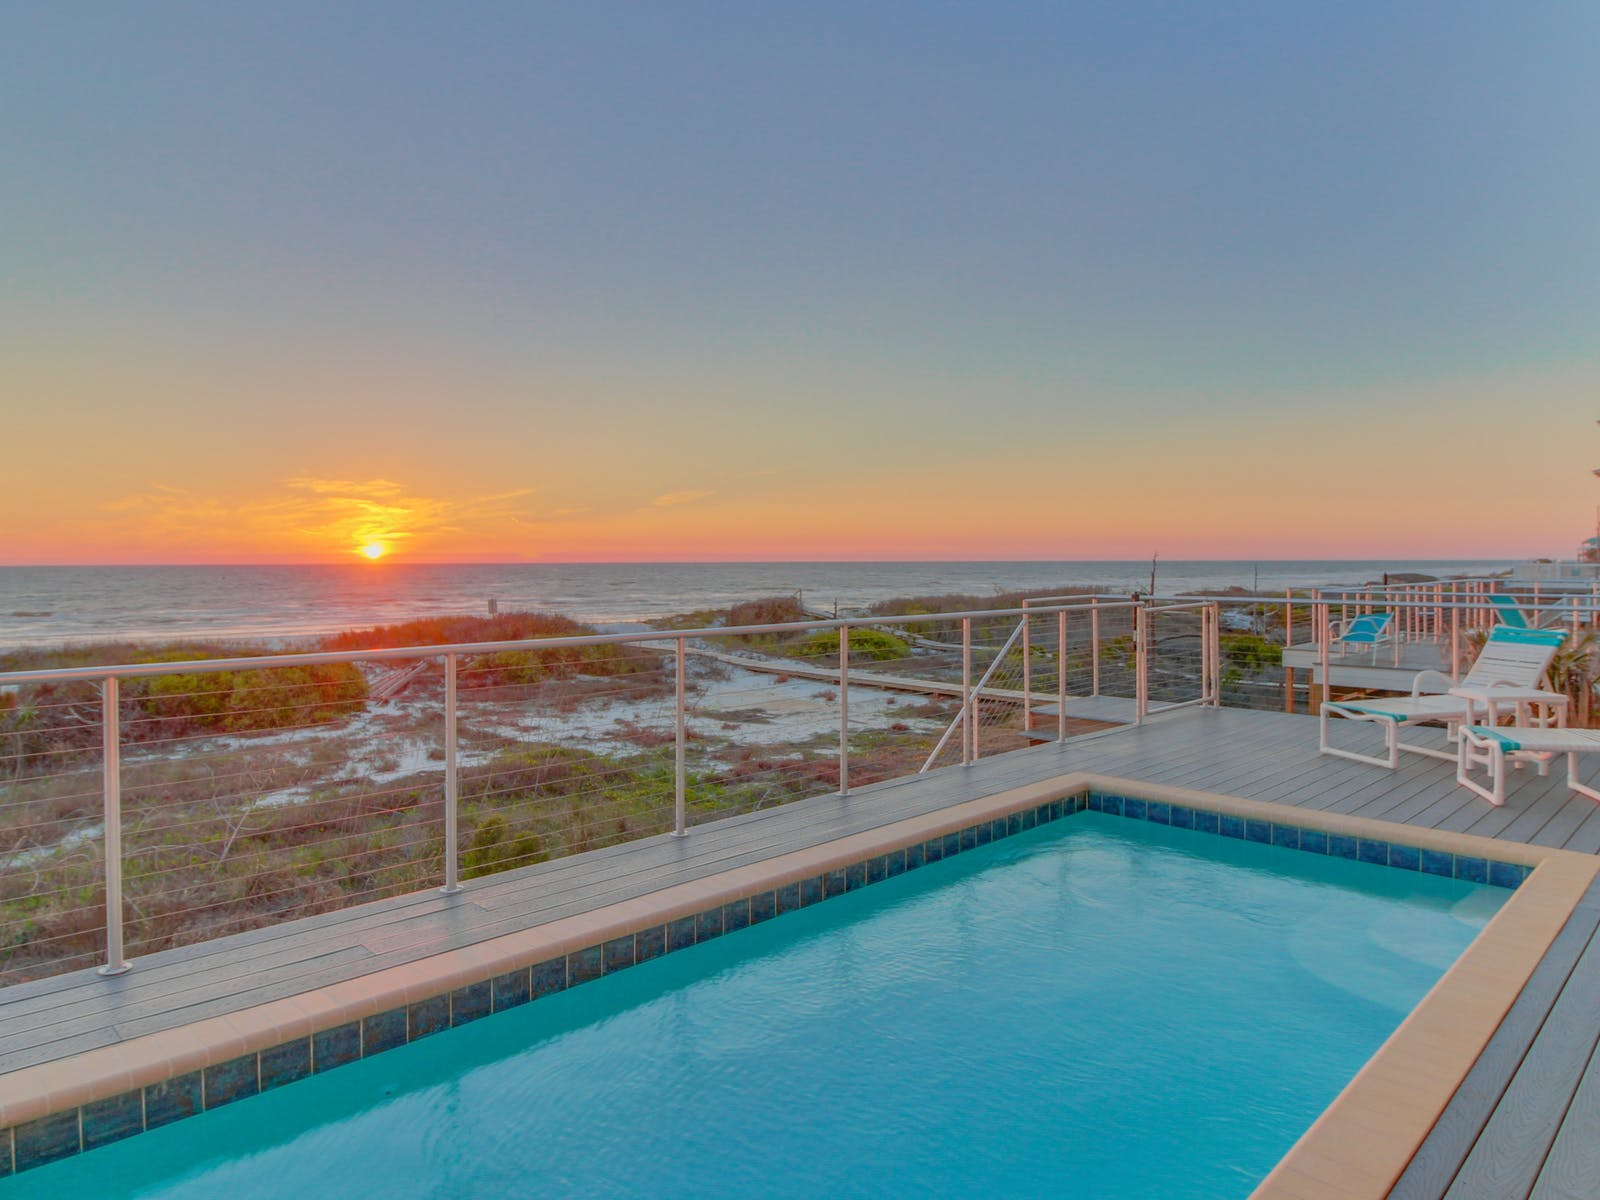 Vacation rental beach and outdoor pool in Port St. Joe, FL